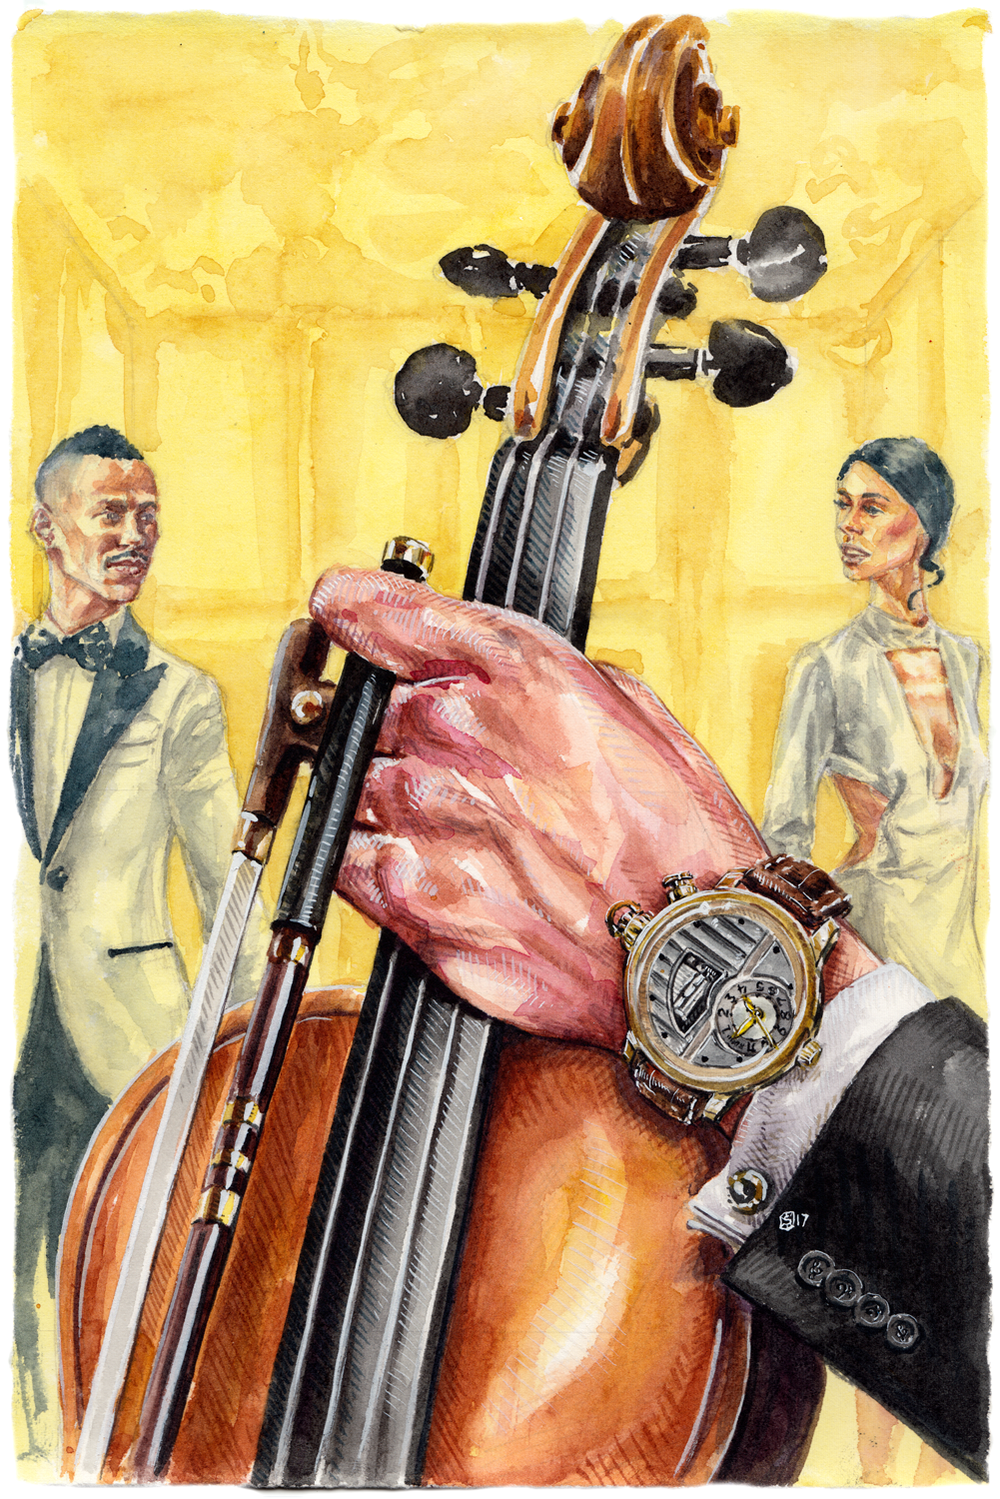 Watch in foreground with man holding violin. Man and woman in background with romantic tension between them